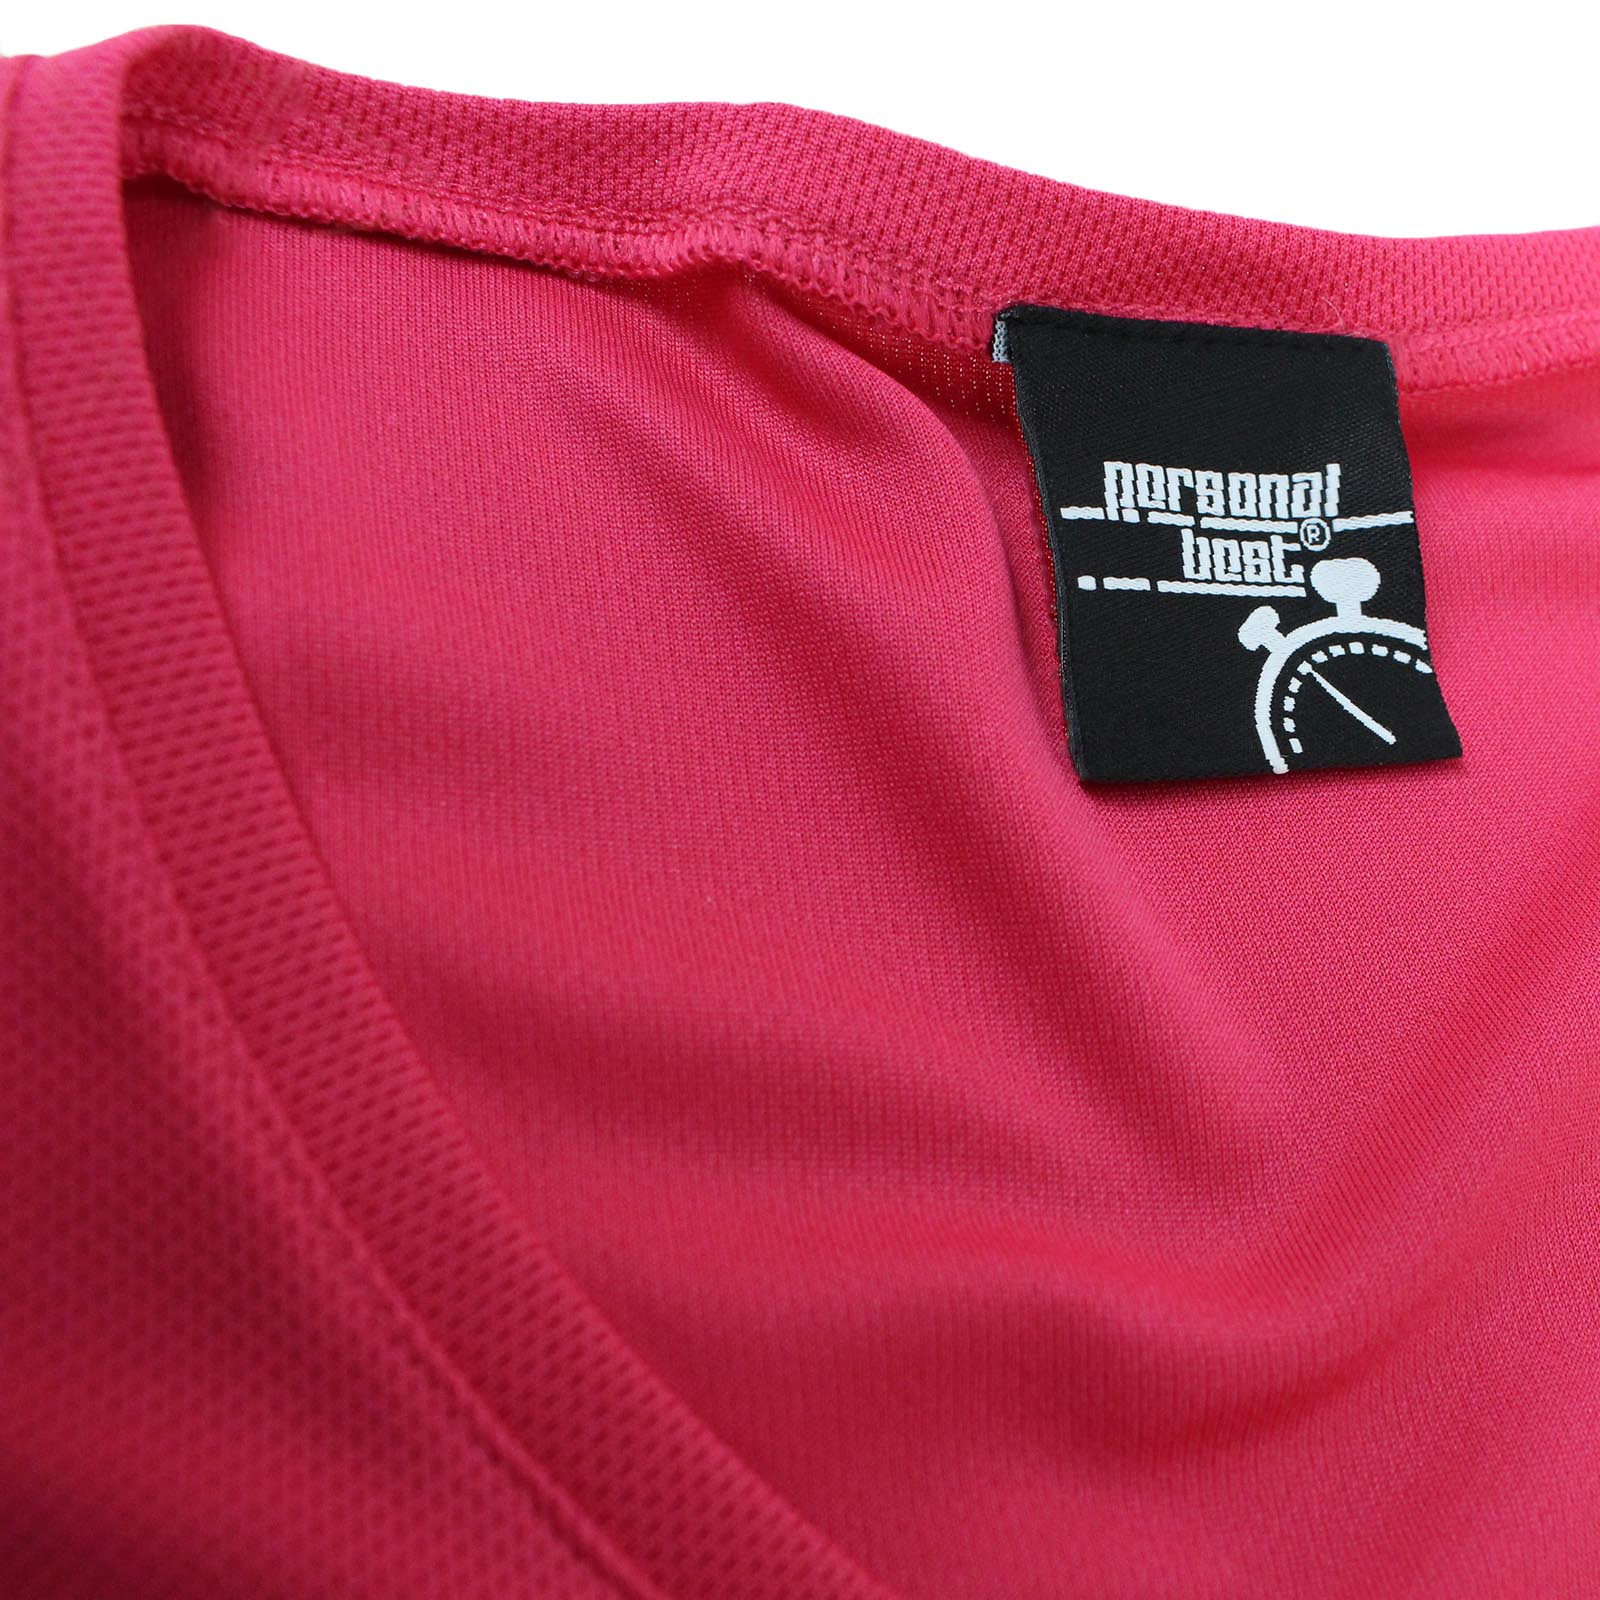 NECK T-SHIRT Dry Fit Breathable Sports V Personal Best Pulse Running